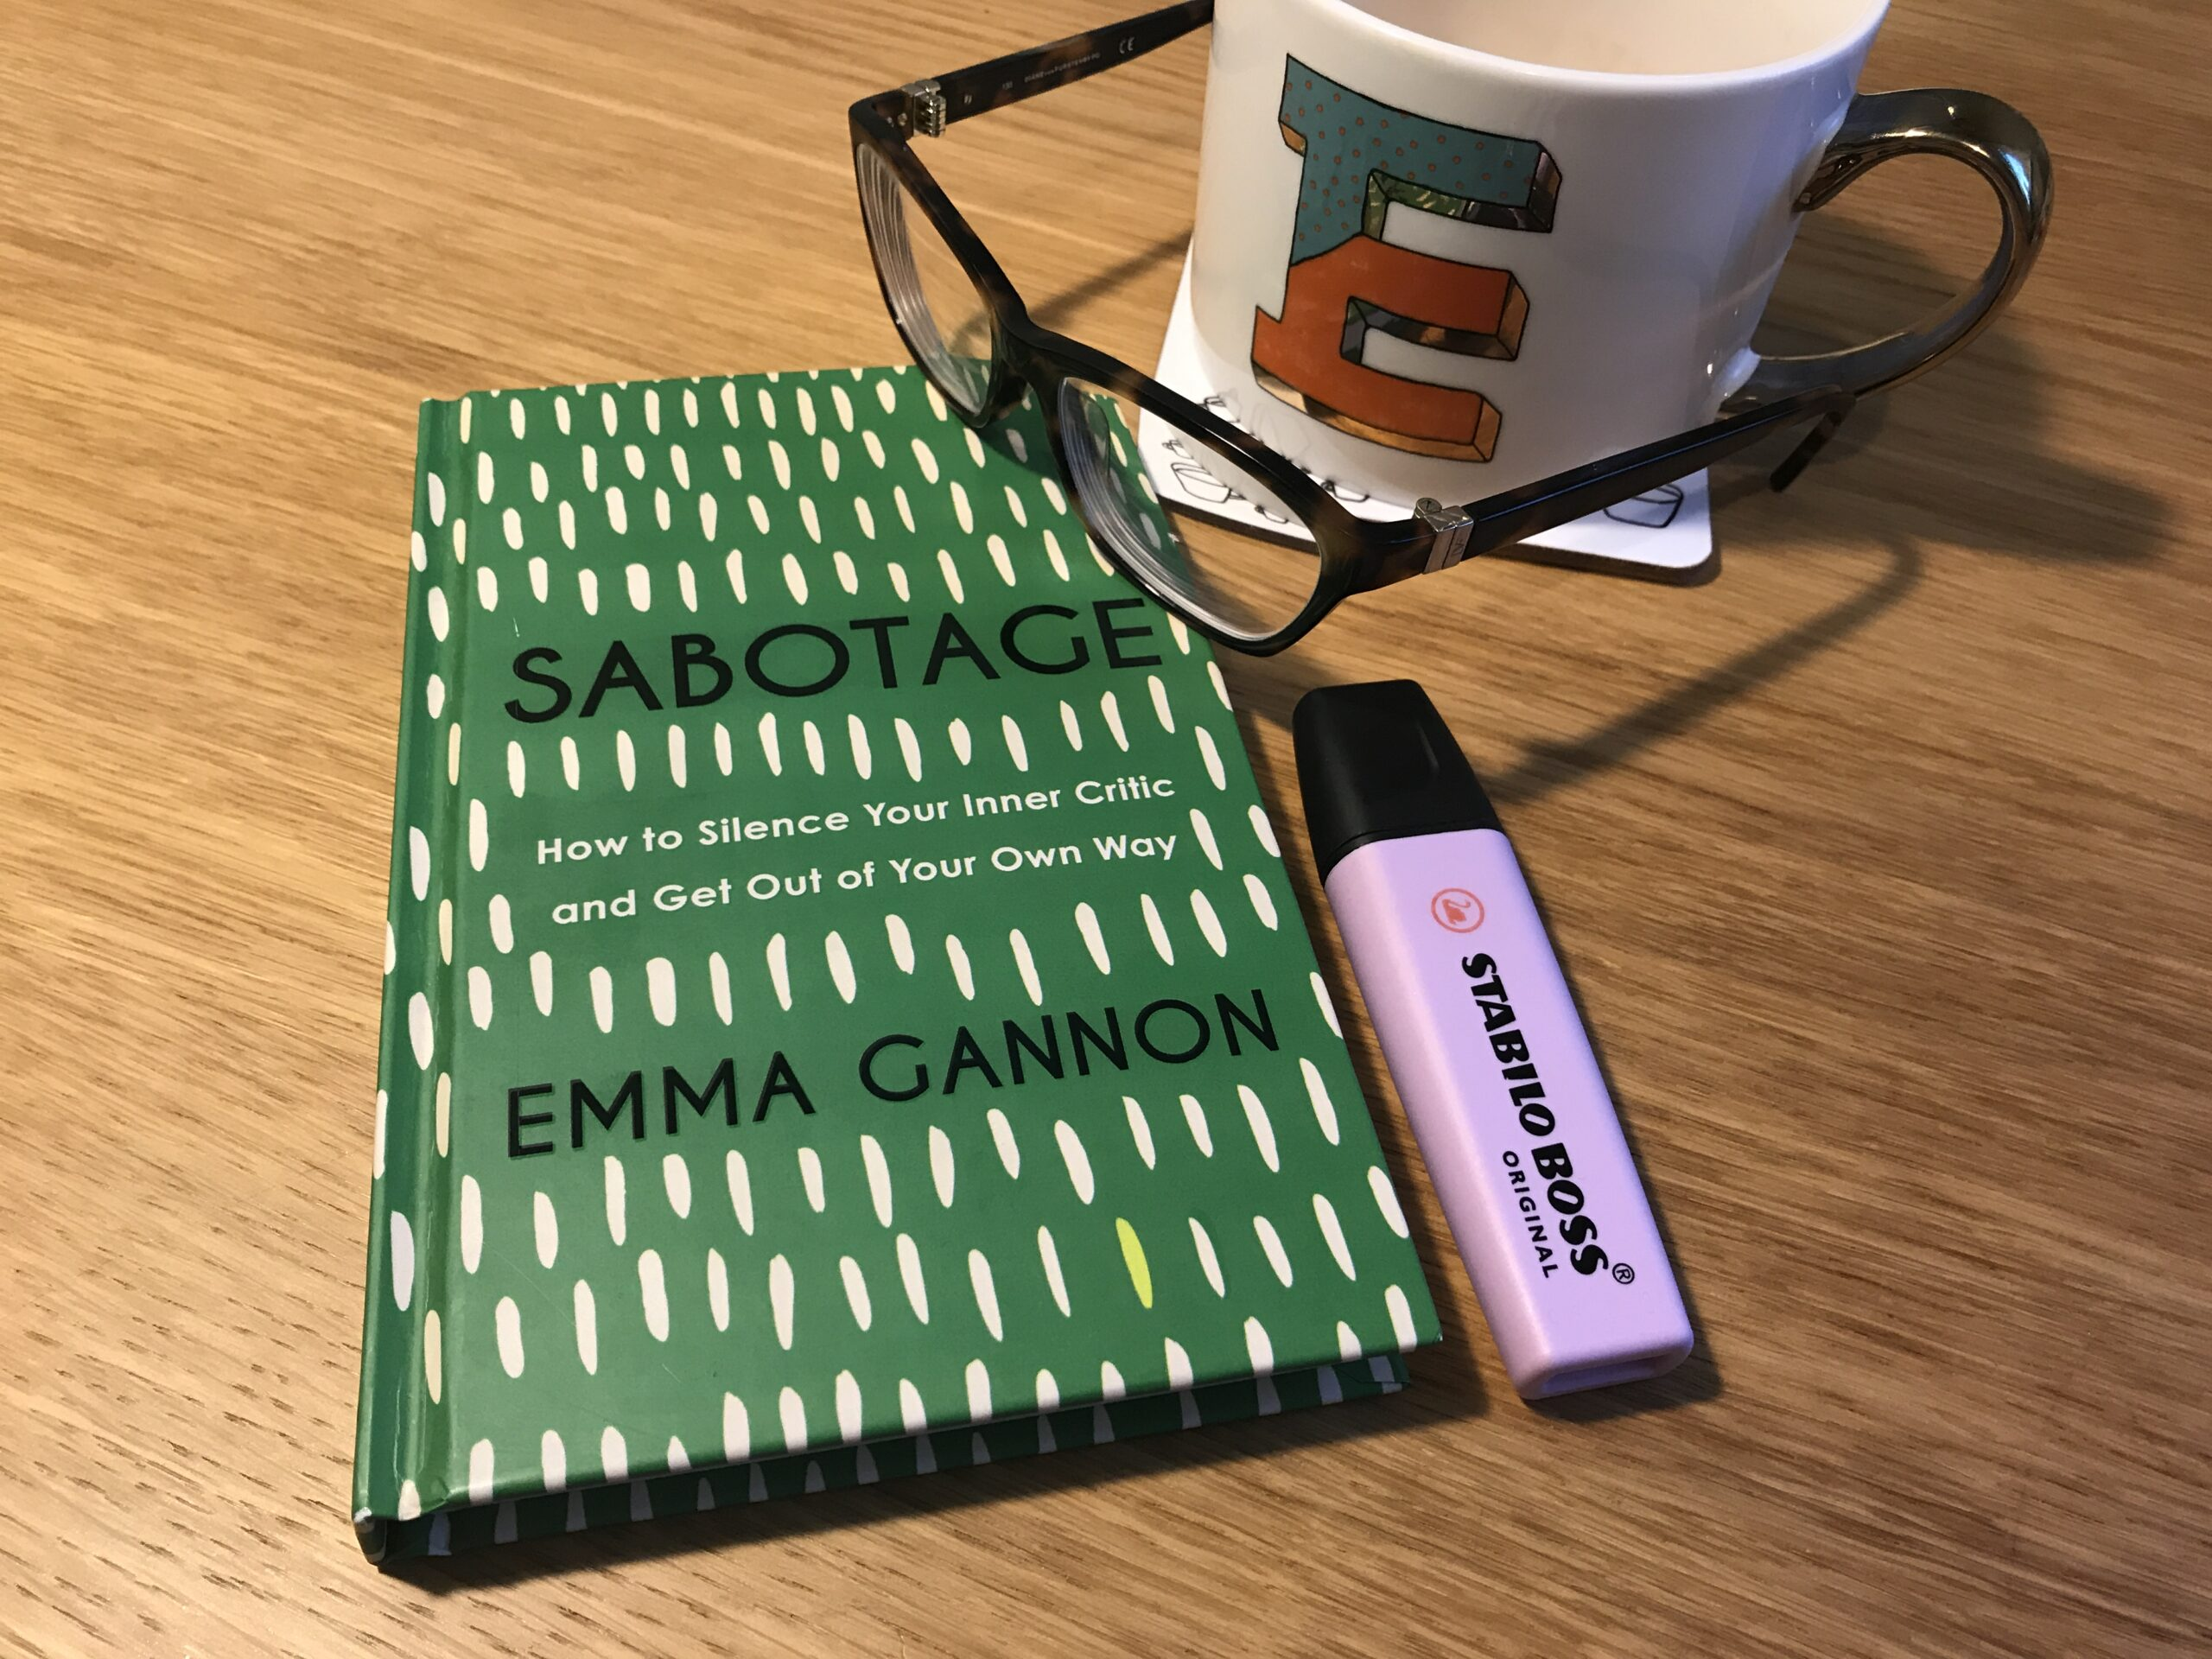 Book, mug, pen and glasses